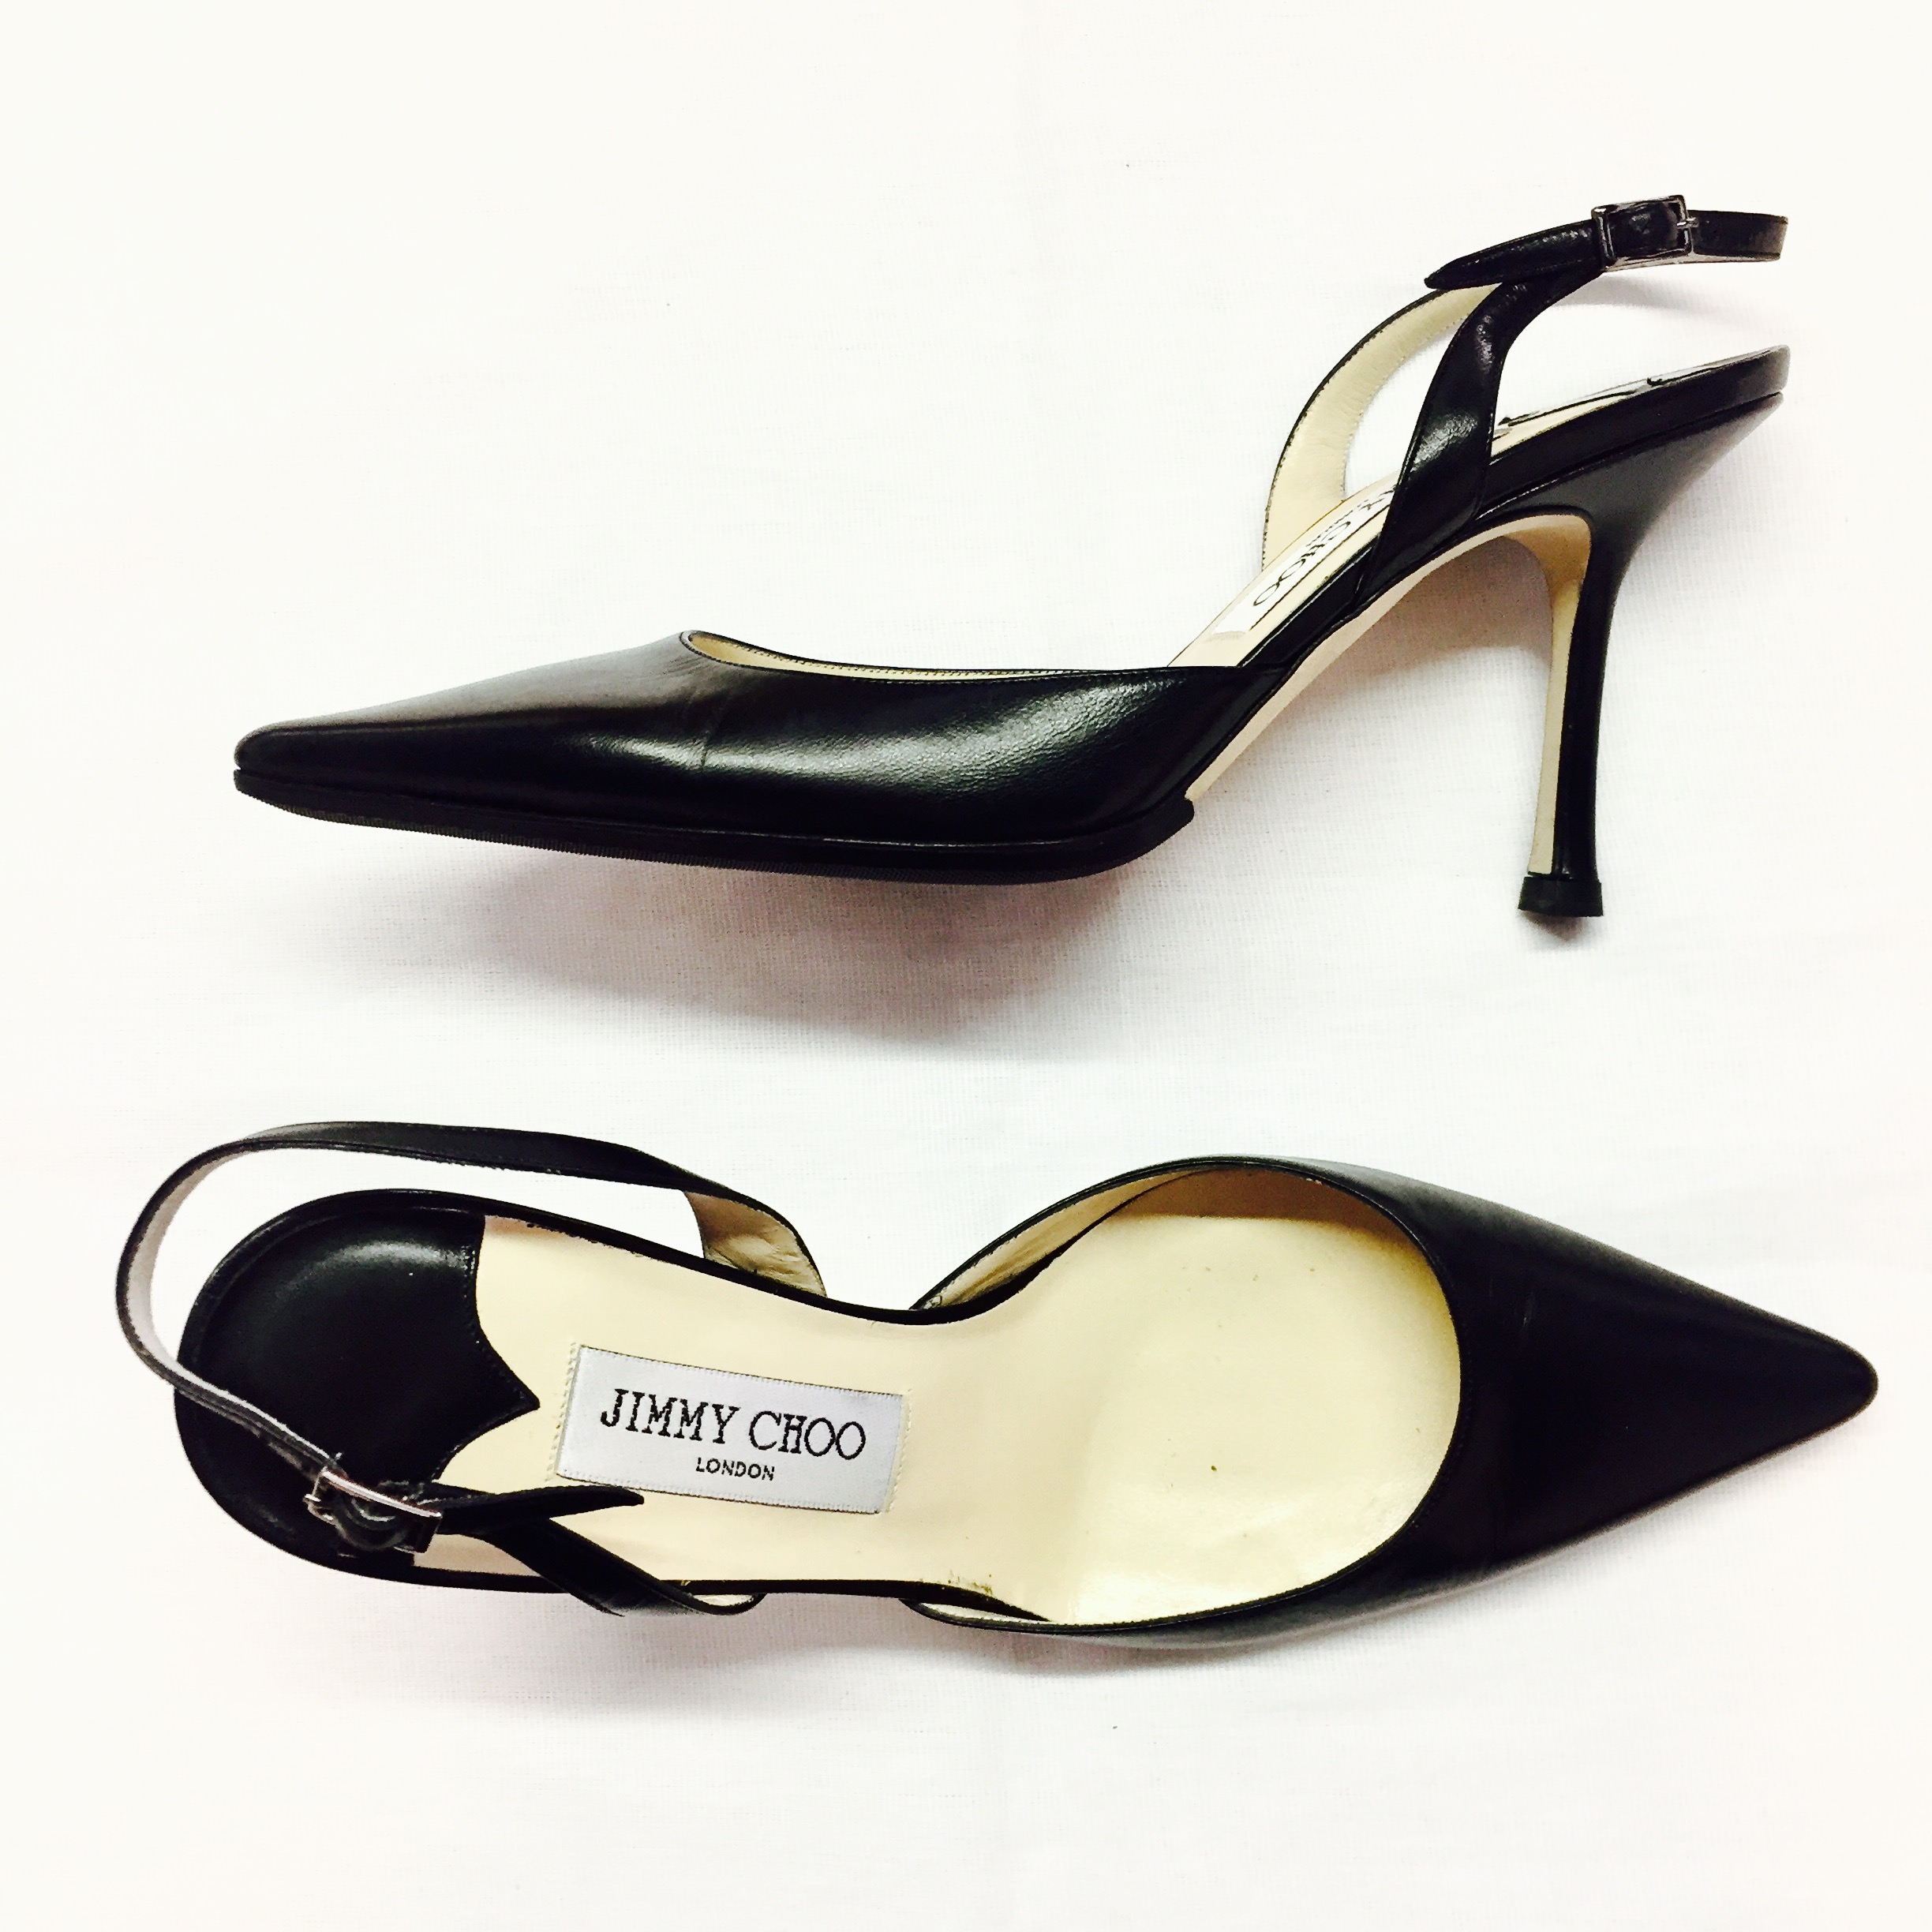 f2480d9f278 Jimmy Choo 39 classic and new - Closet Couture